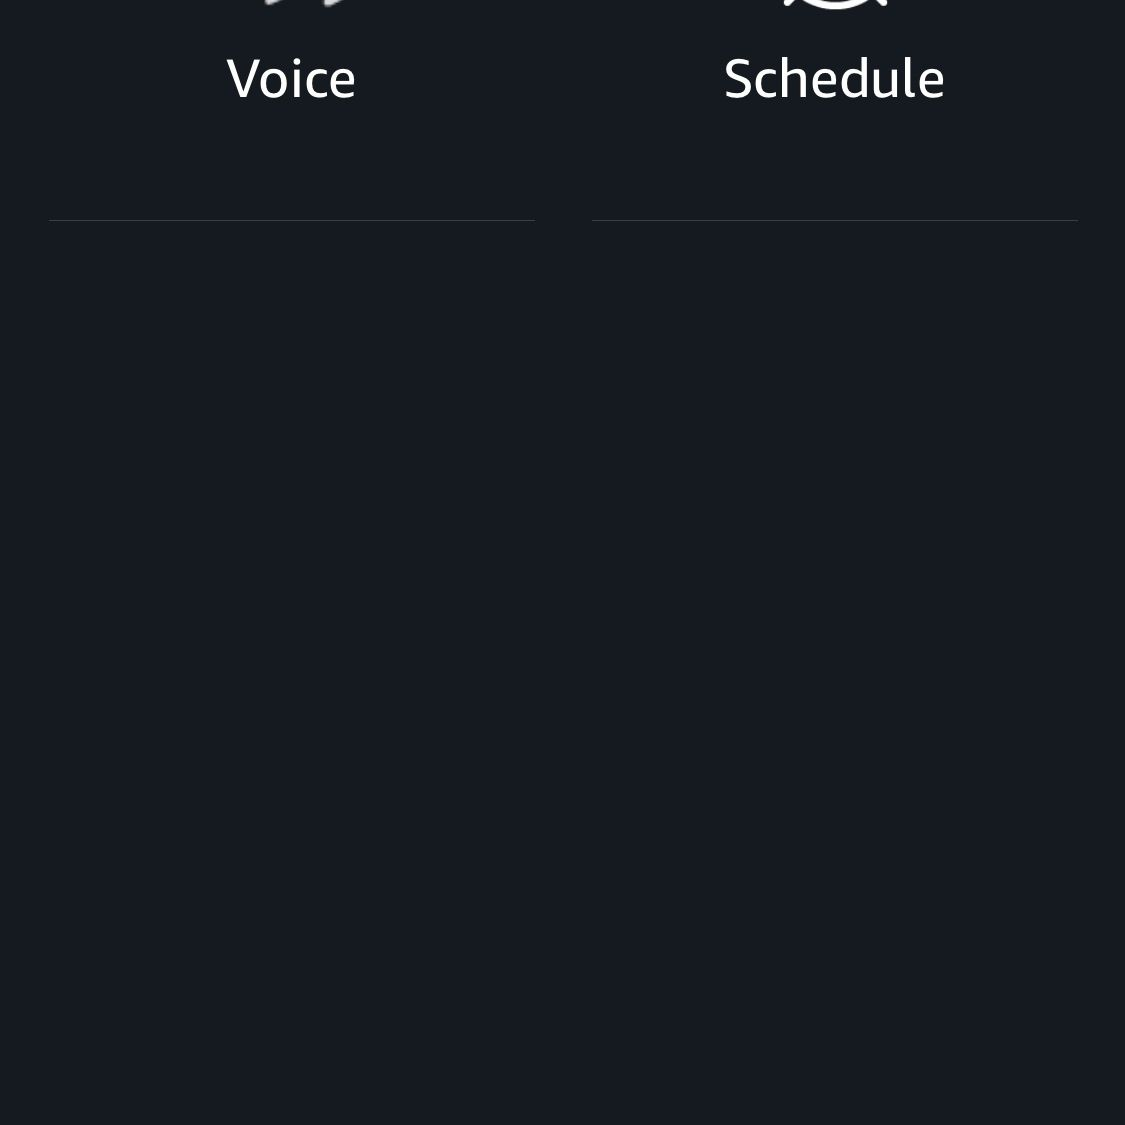 A screen shot in the Alexa app with Voice as an option.